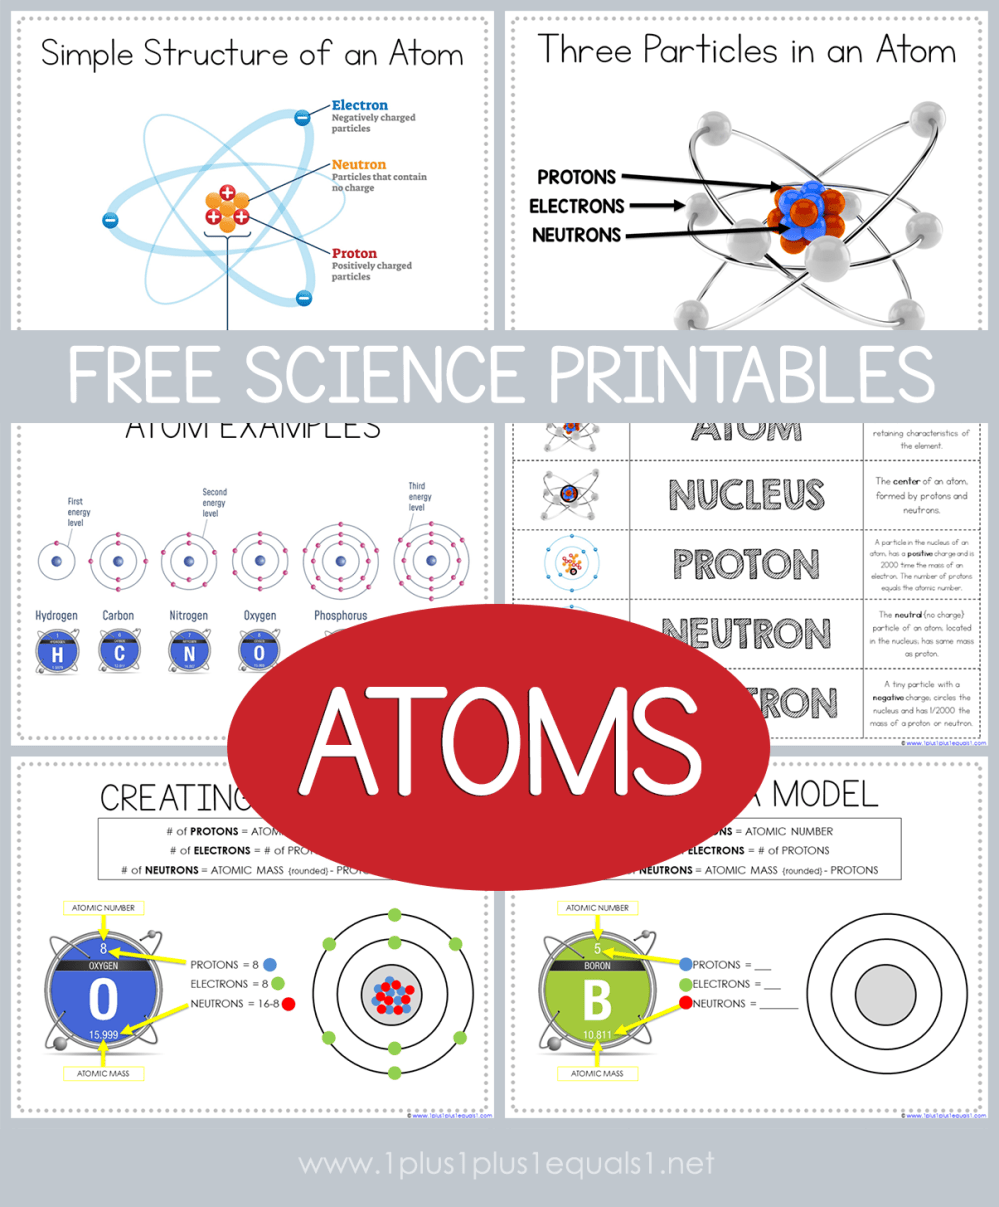 medium resolution of Free Science Printables ~ Atoms - 1+1+1\u003d1